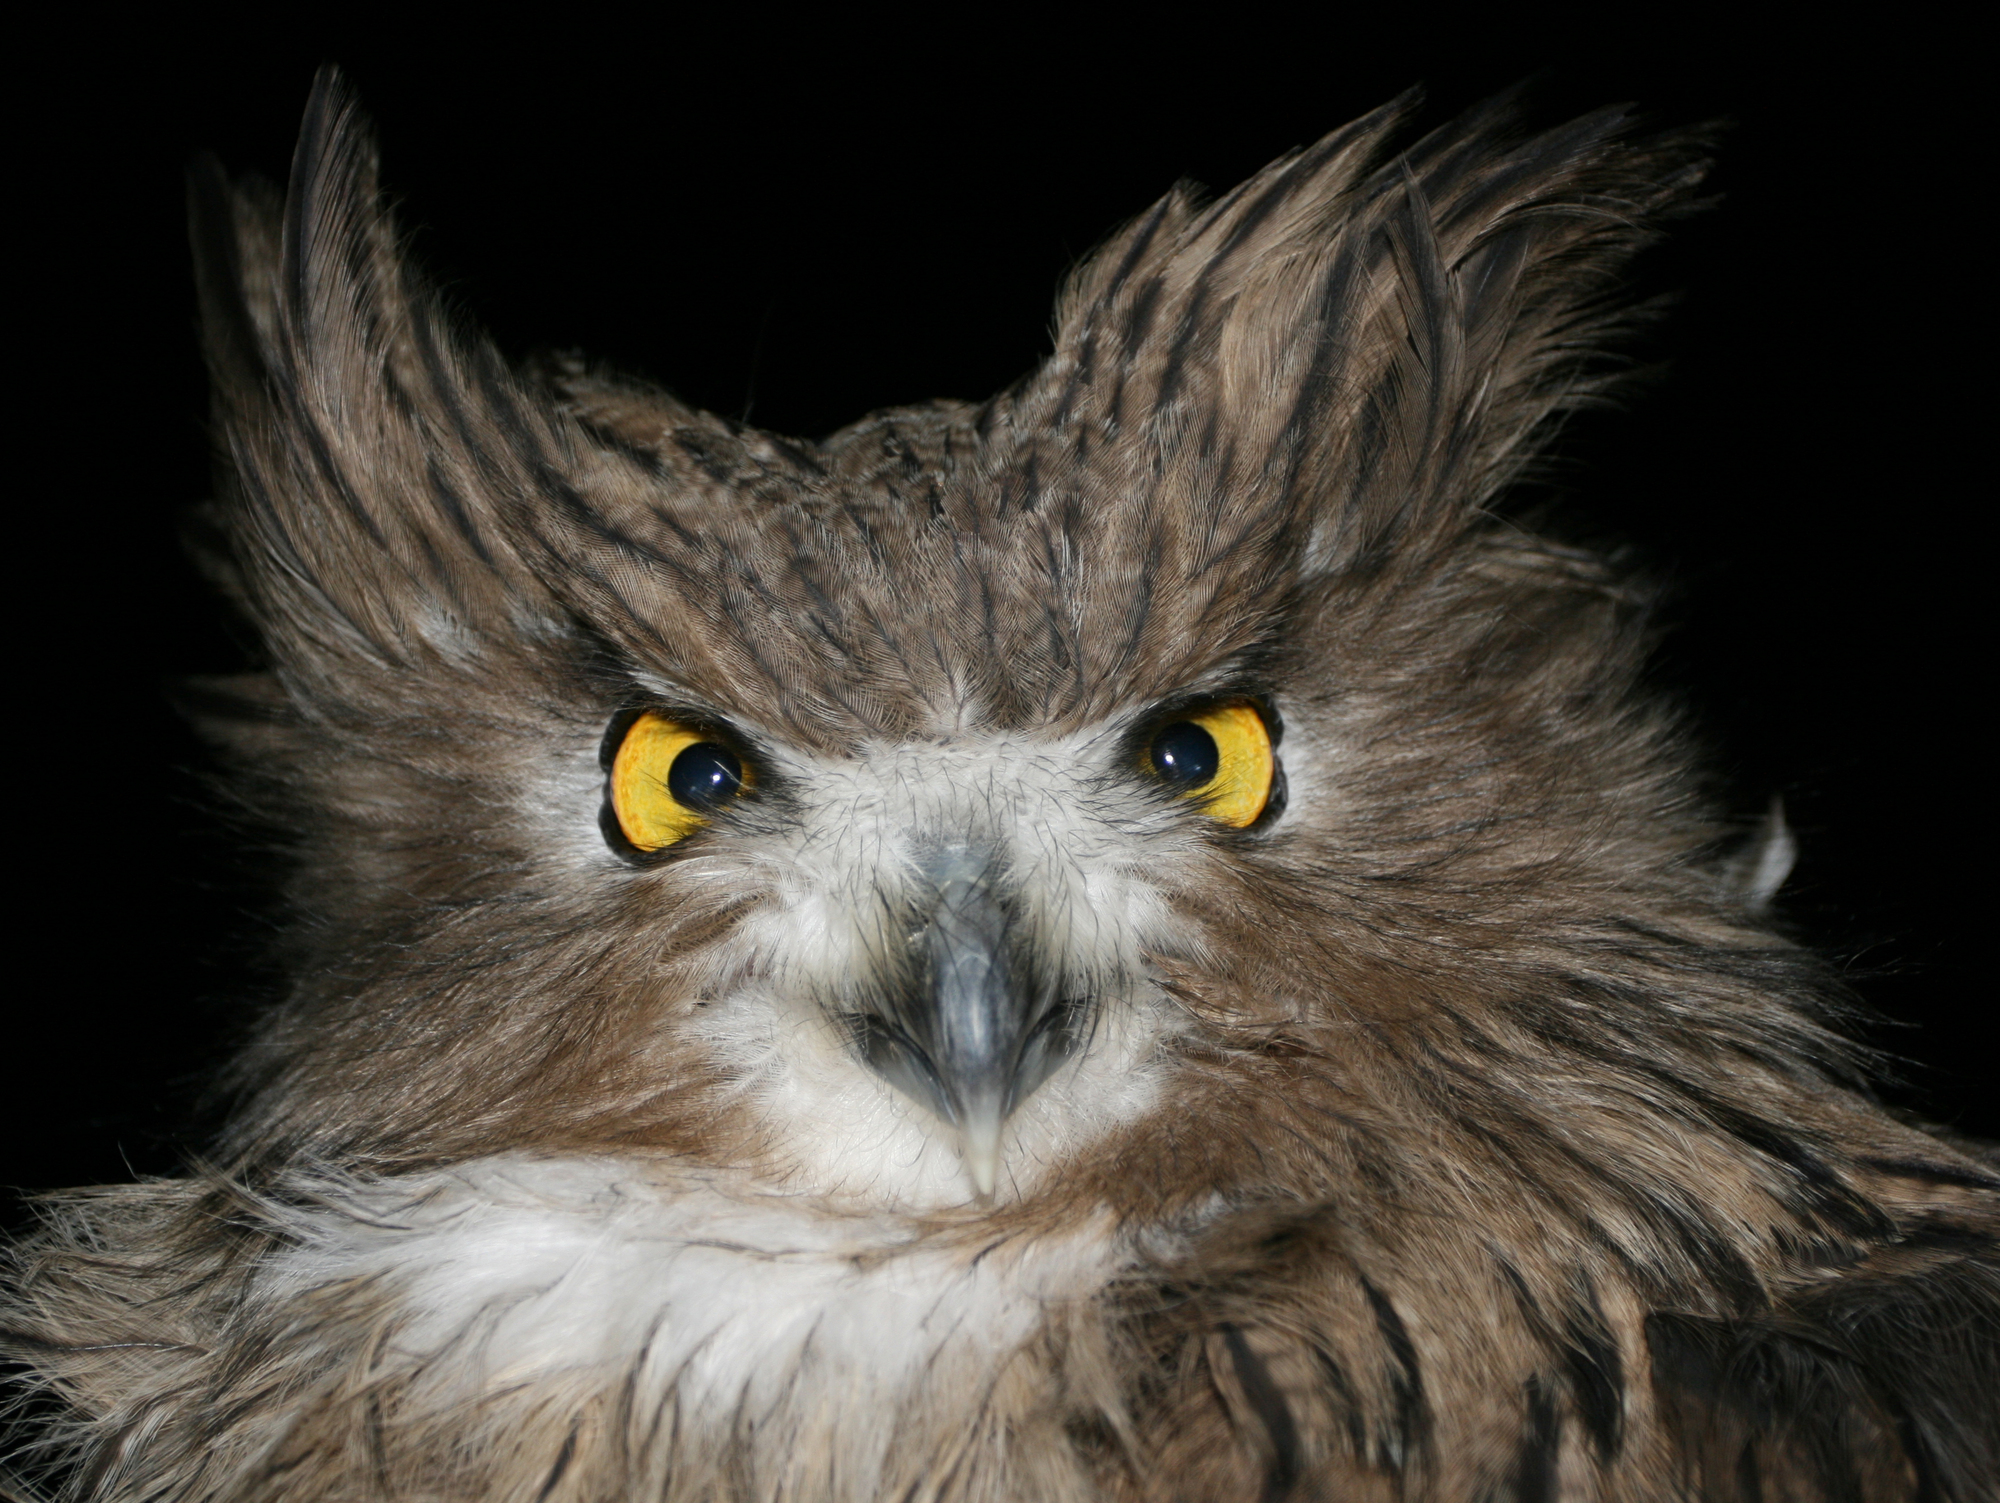 Bad hair days are always a thing for fish owls. Their rough feathers help them stay warm.